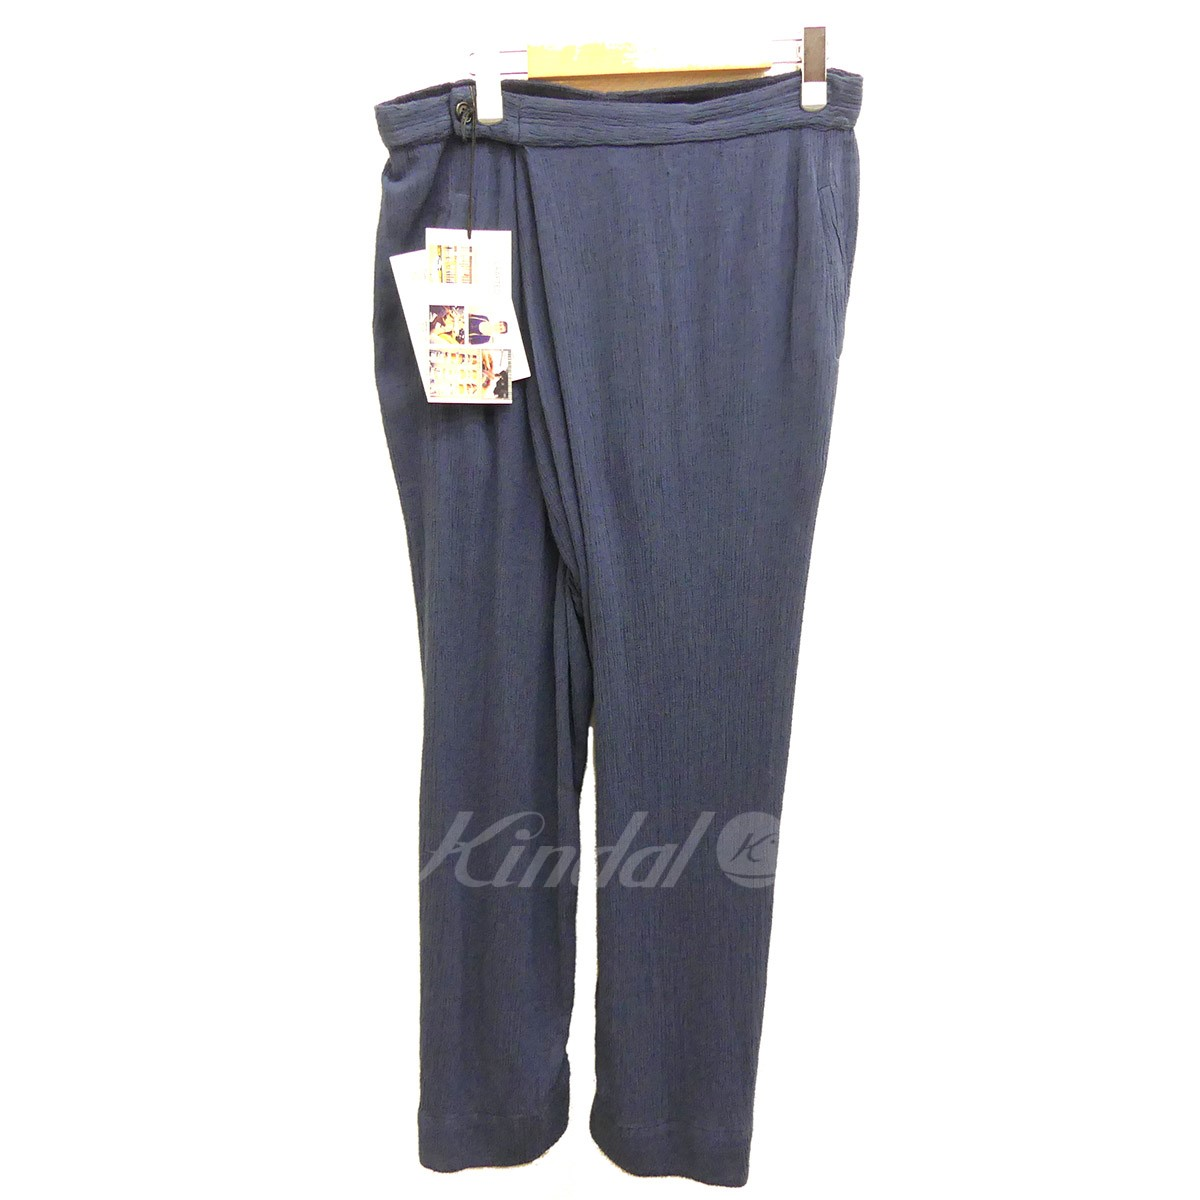 【中古】I OWE YOU ART COMES FIRST ドレープタイパンツ Draped Thai Pant 2017SS 【送料無料】 【003805】 【銅】